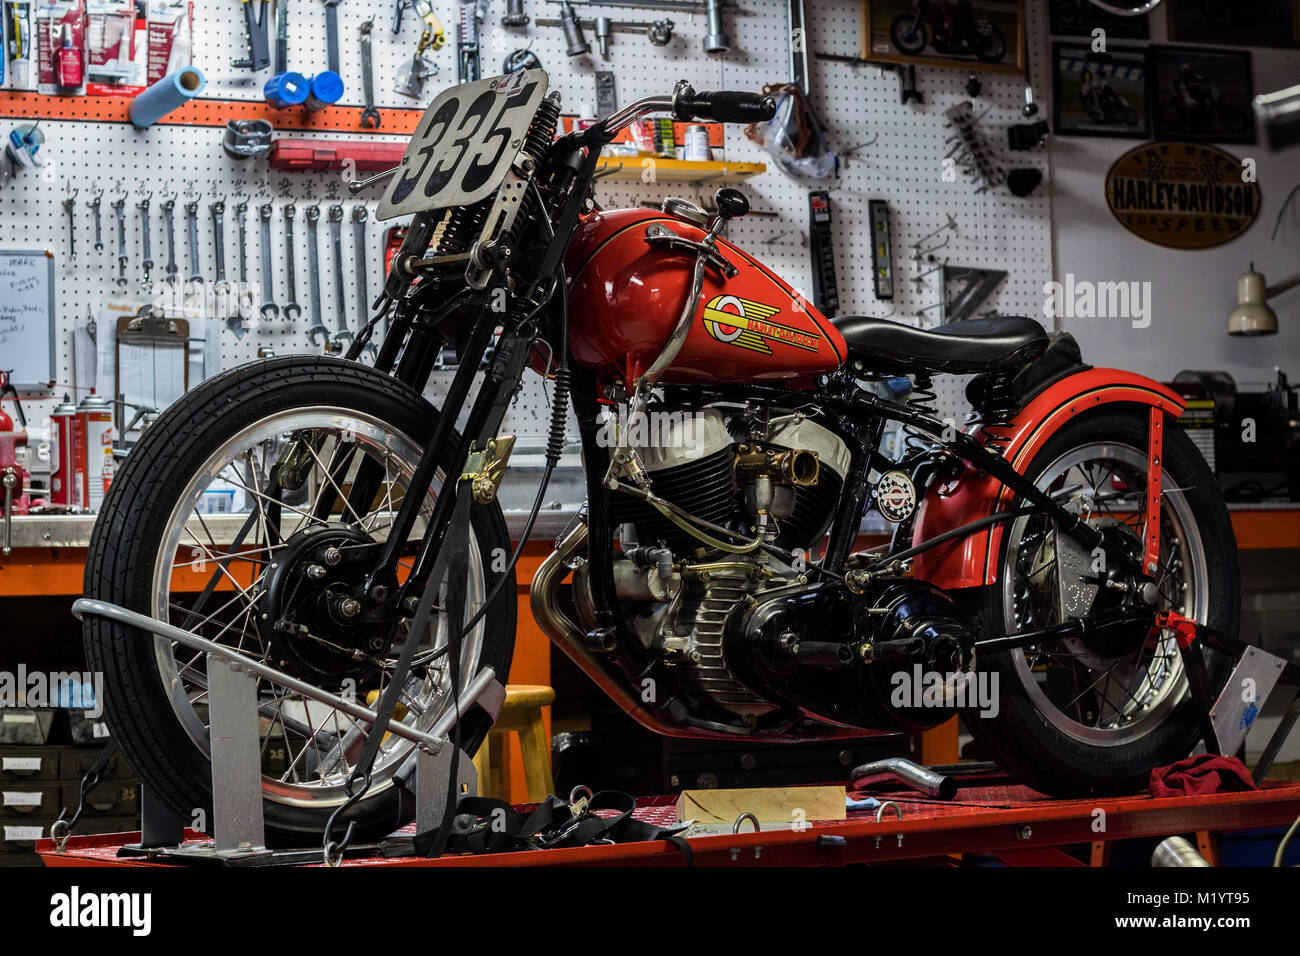 Inside A Motorcycle Garage That Builds Vintage Harleys Stock Photo